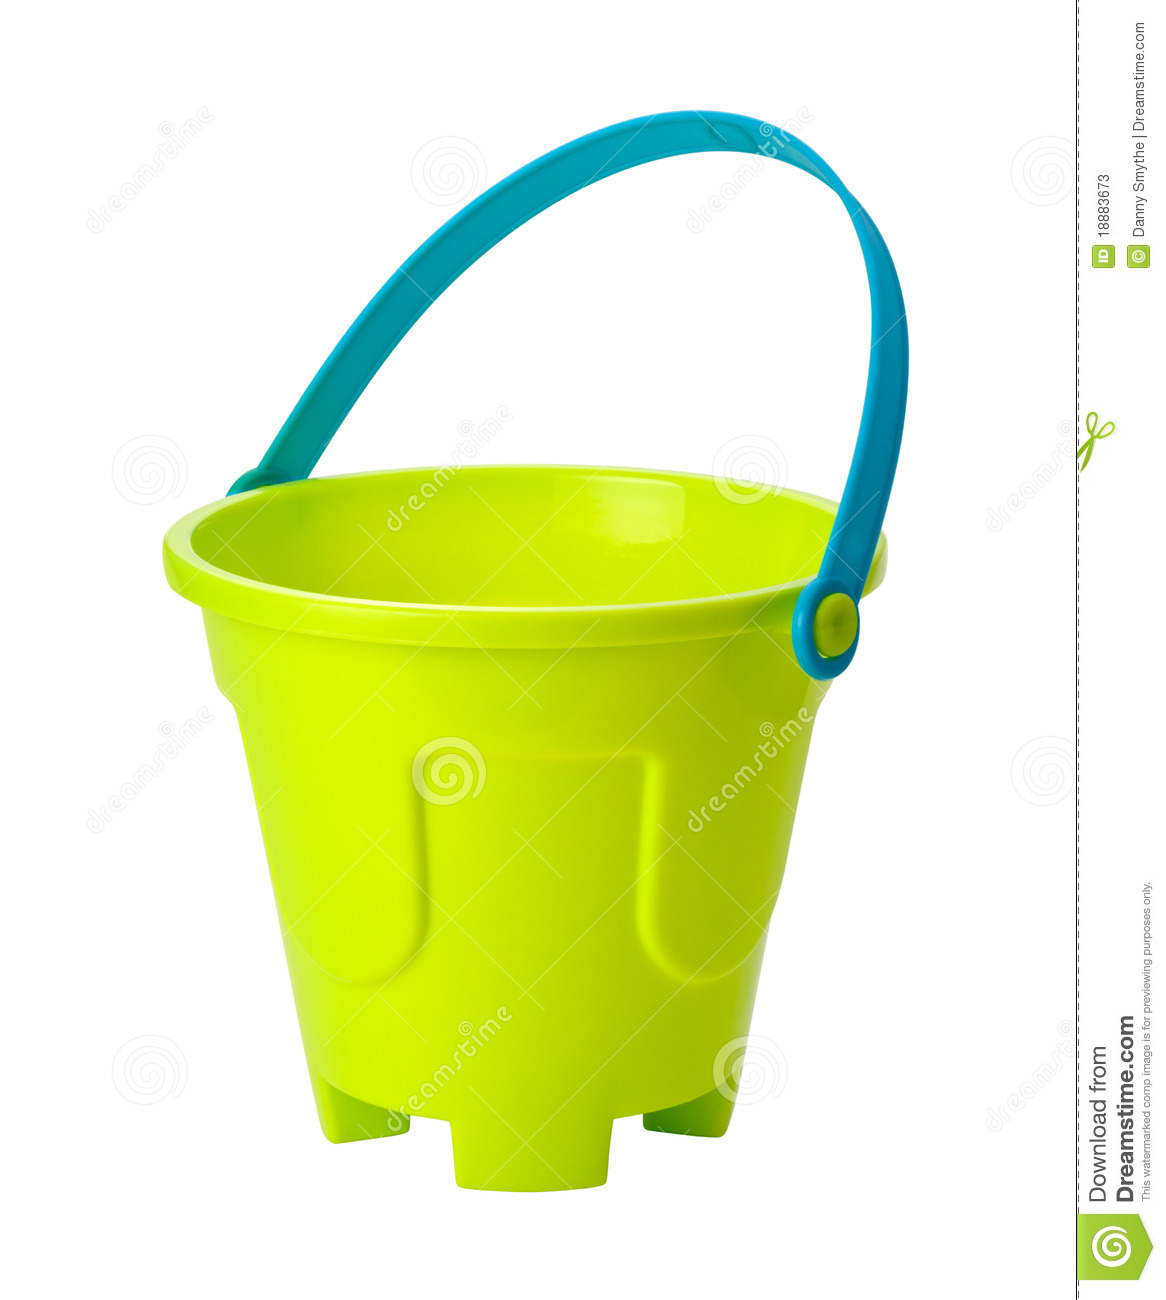 Beach Toy Sand Pail Isolated With Clipping Path Isolation Is On A